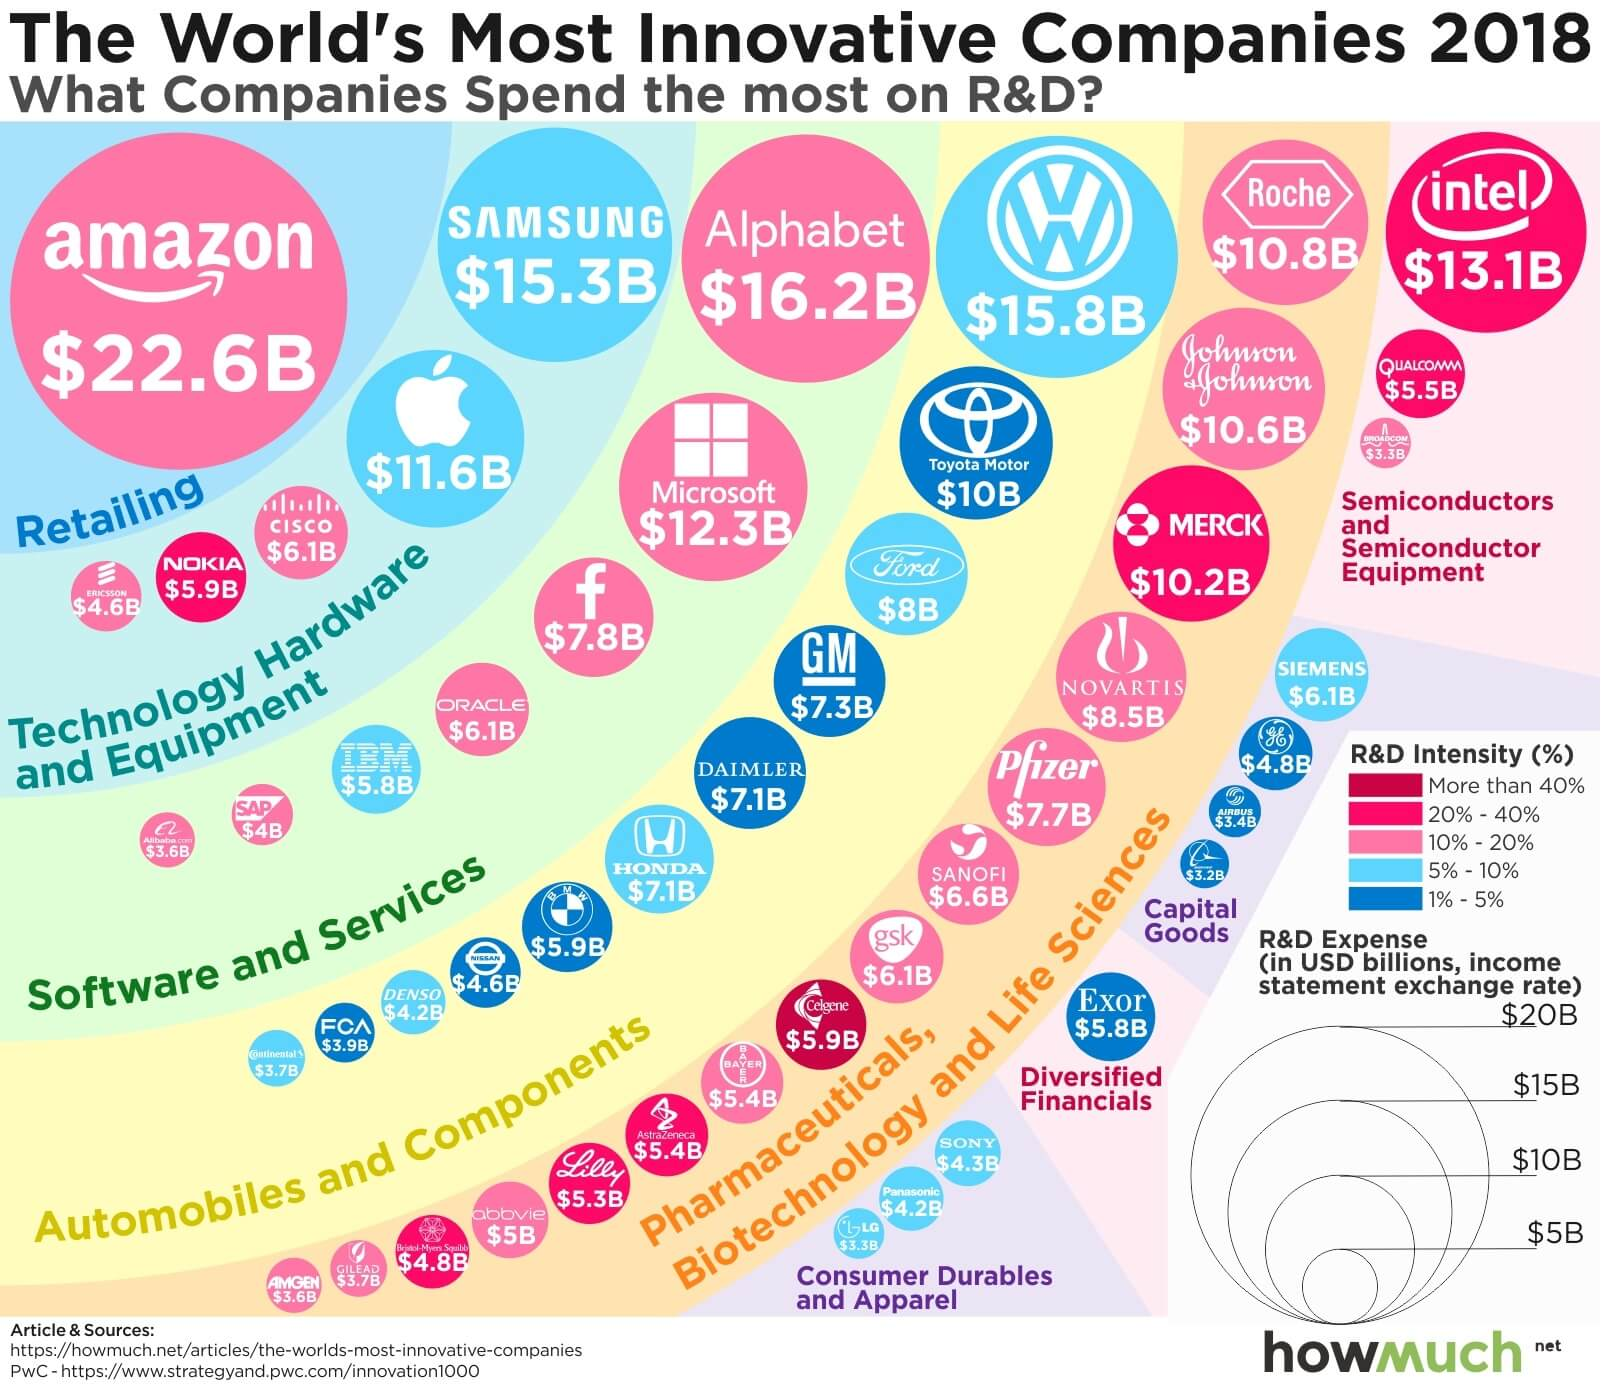 the-worlds-most-innovative-companies-4bcd.jpg